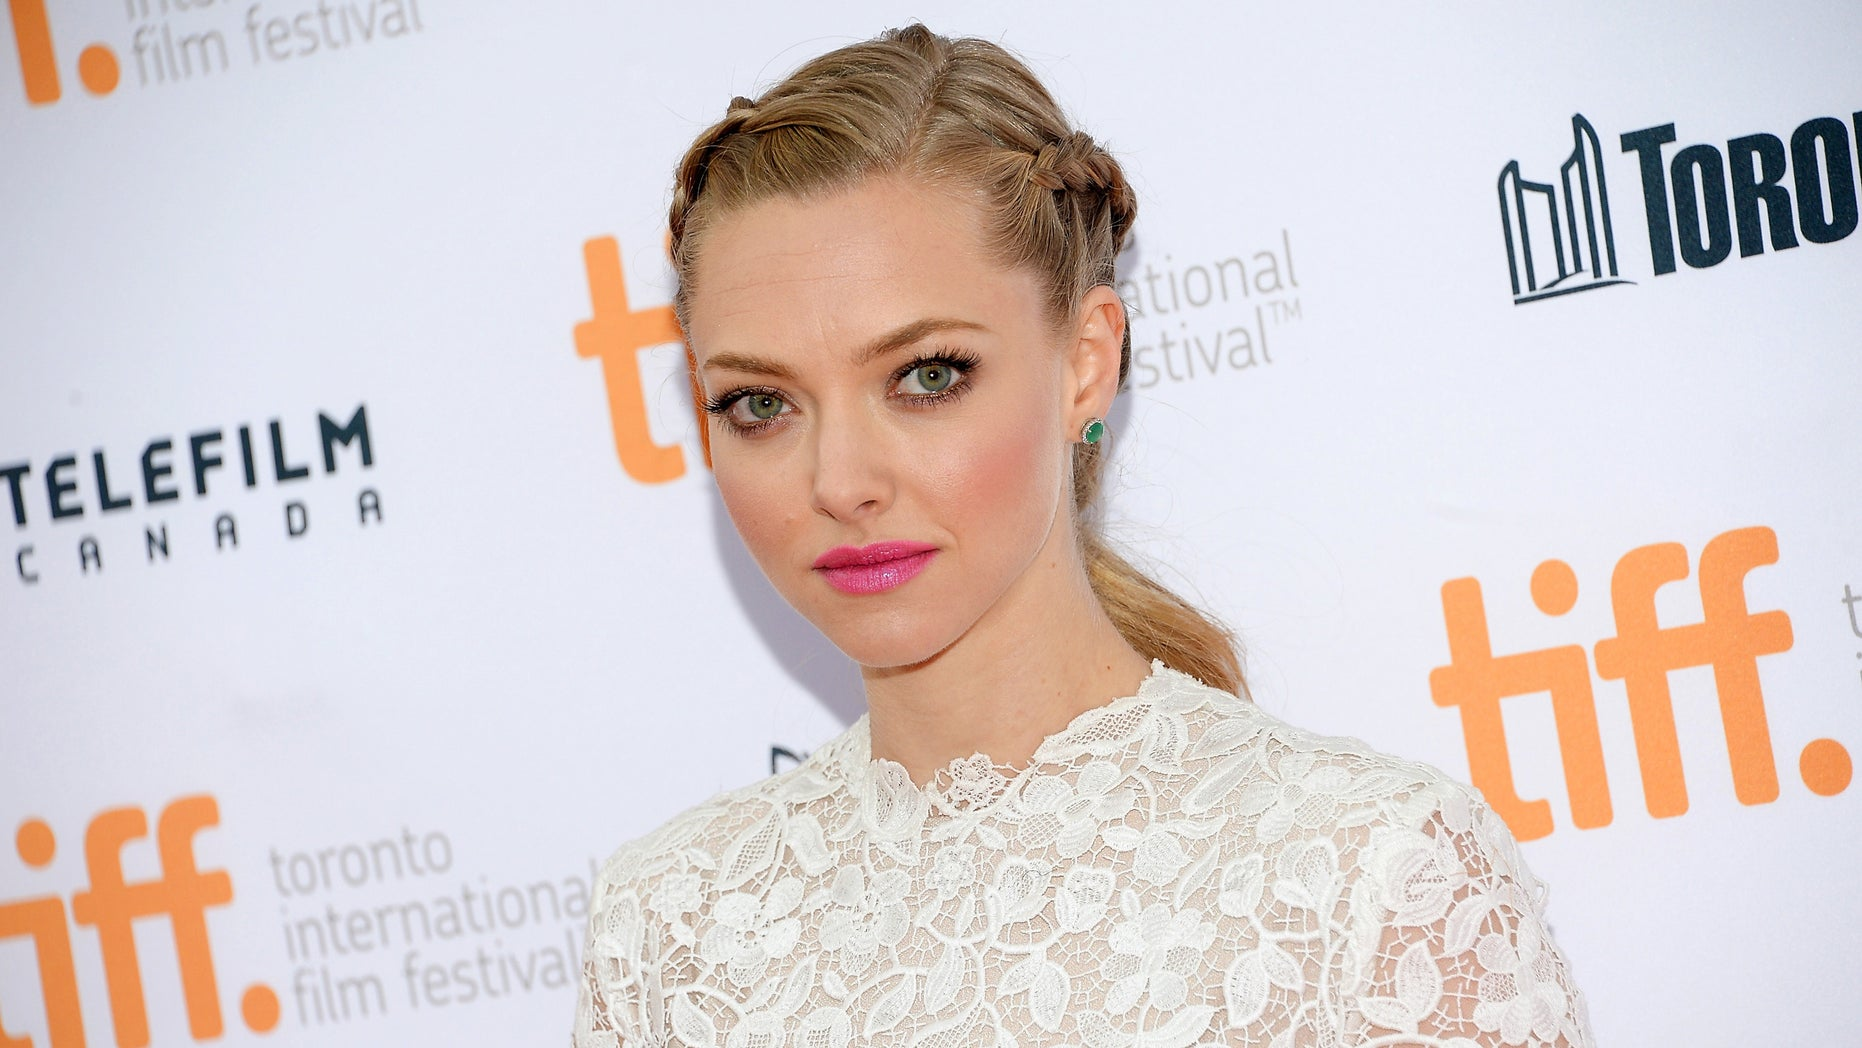 """In this Sept. 6, 2014 file photo, actress Amanda Seyfried attends the """"While We're Young"""" premiere during the Toronto International Film Festival in Toronto."""